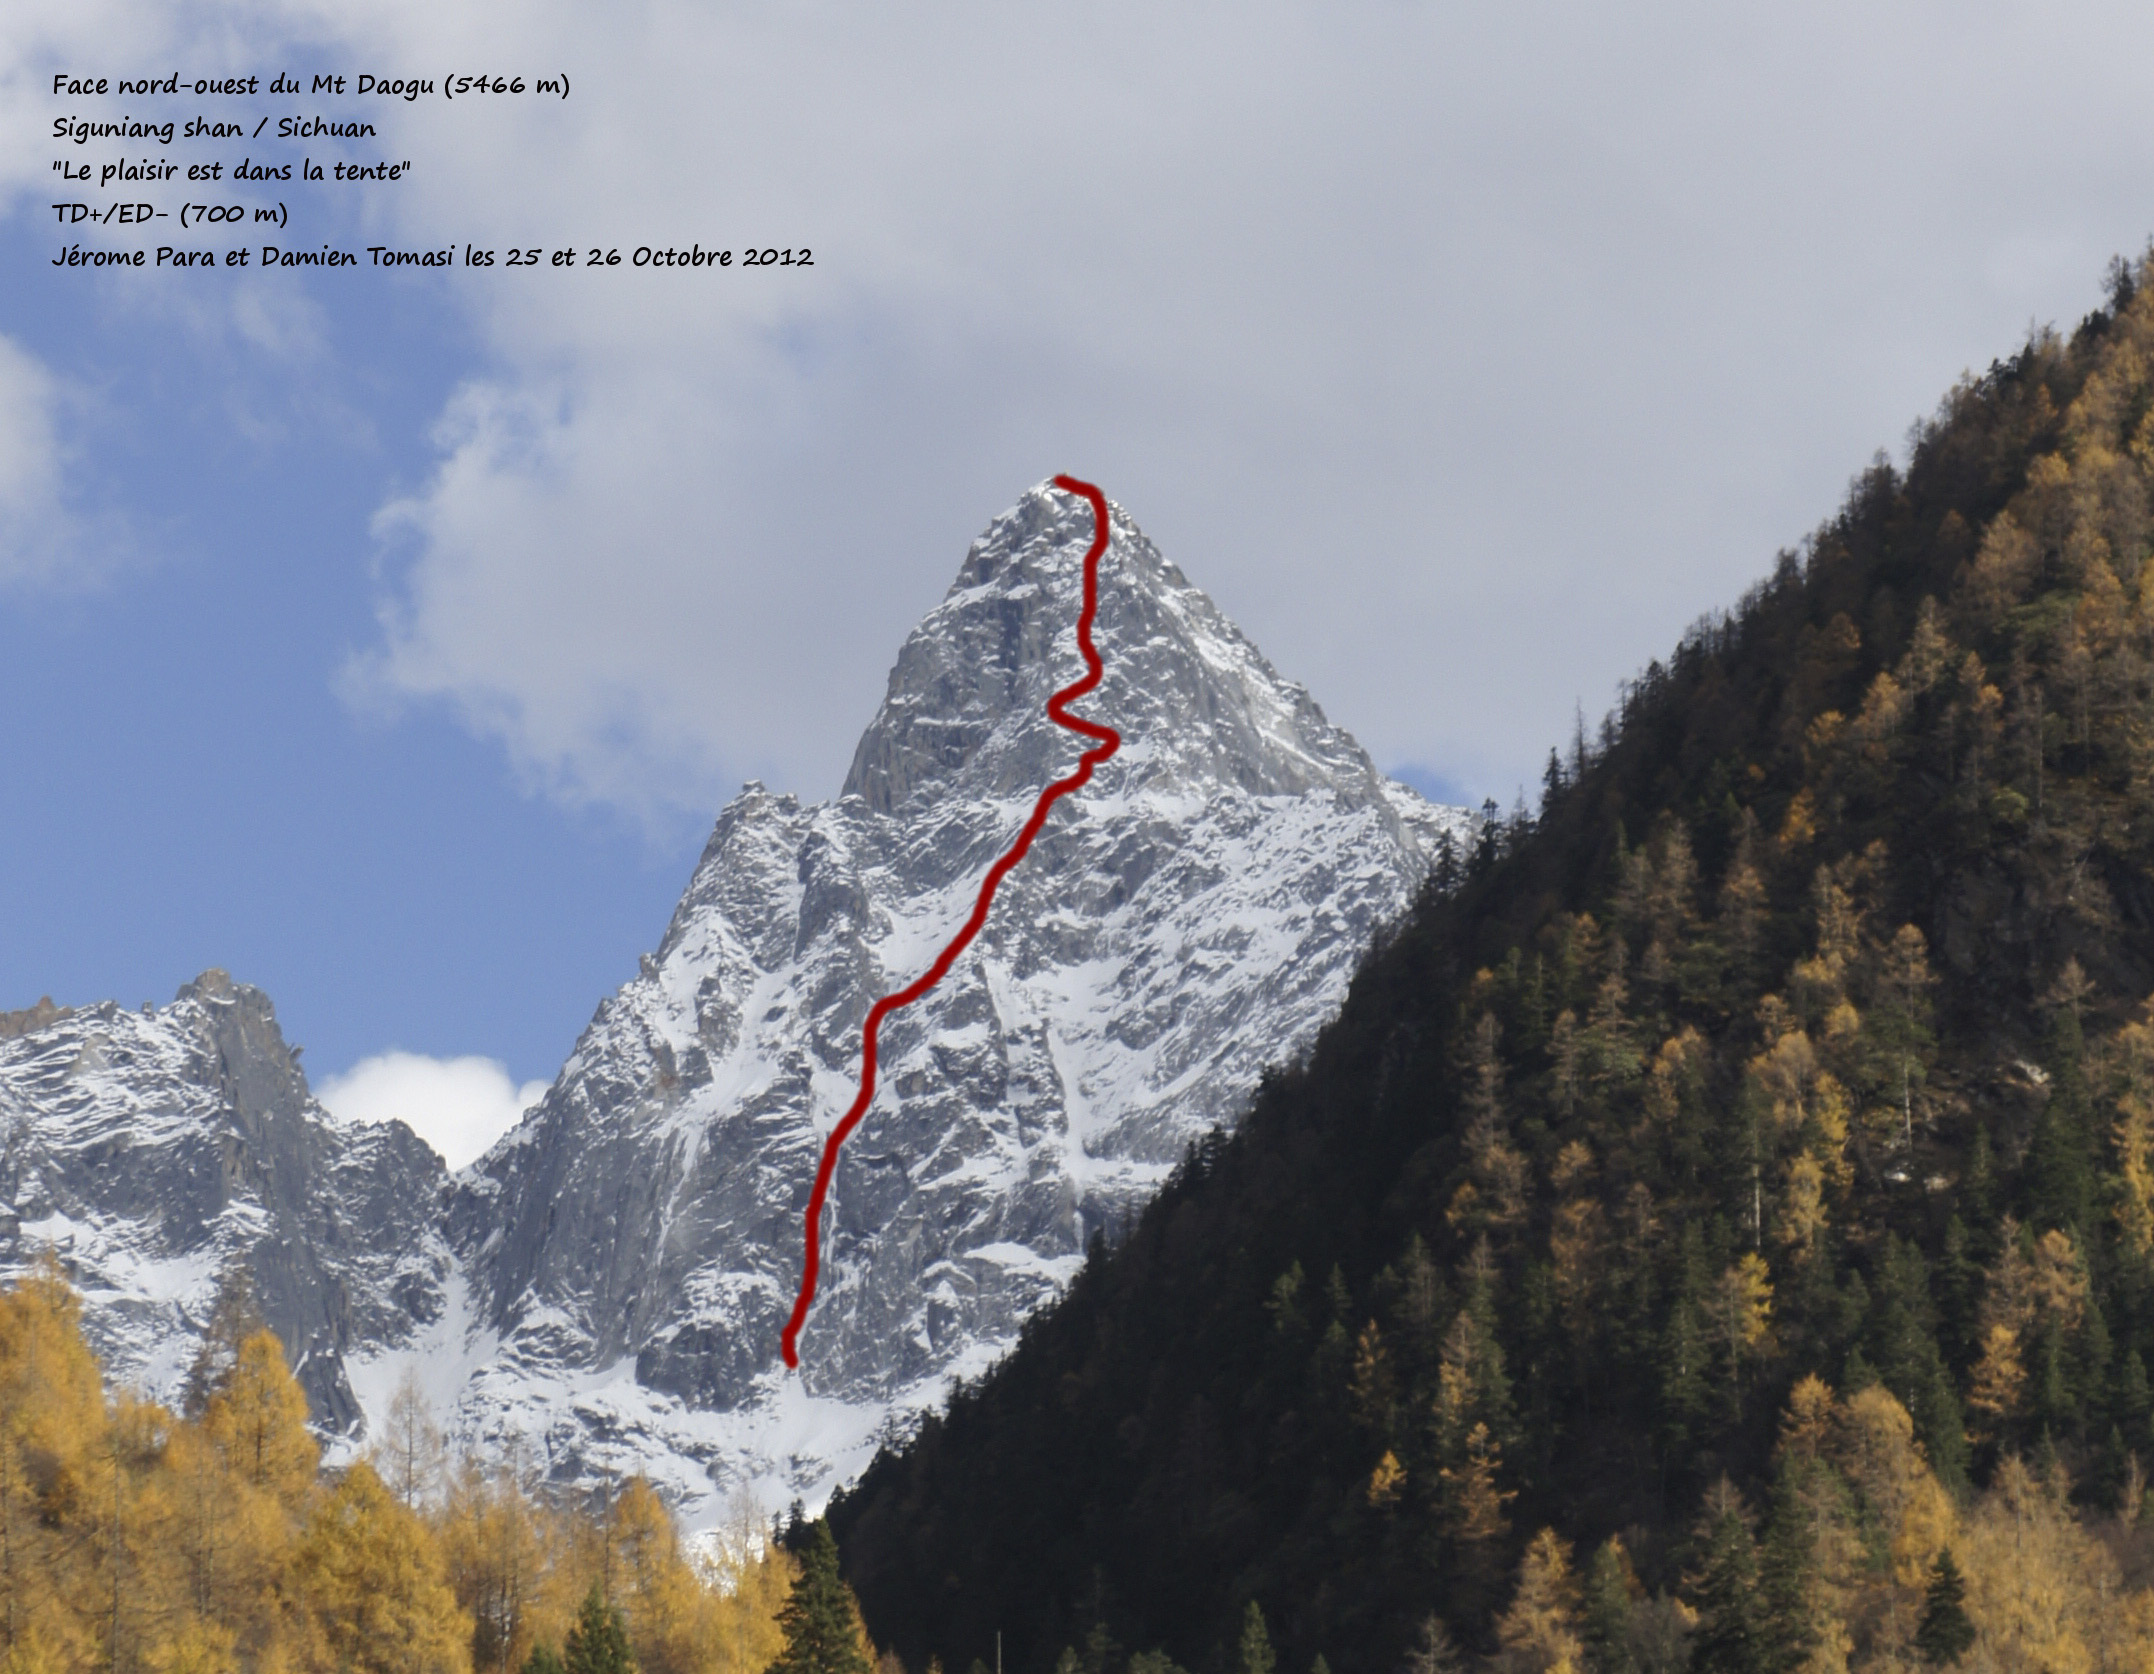 Northwest face of Daagou showing the 2012 French ascent.